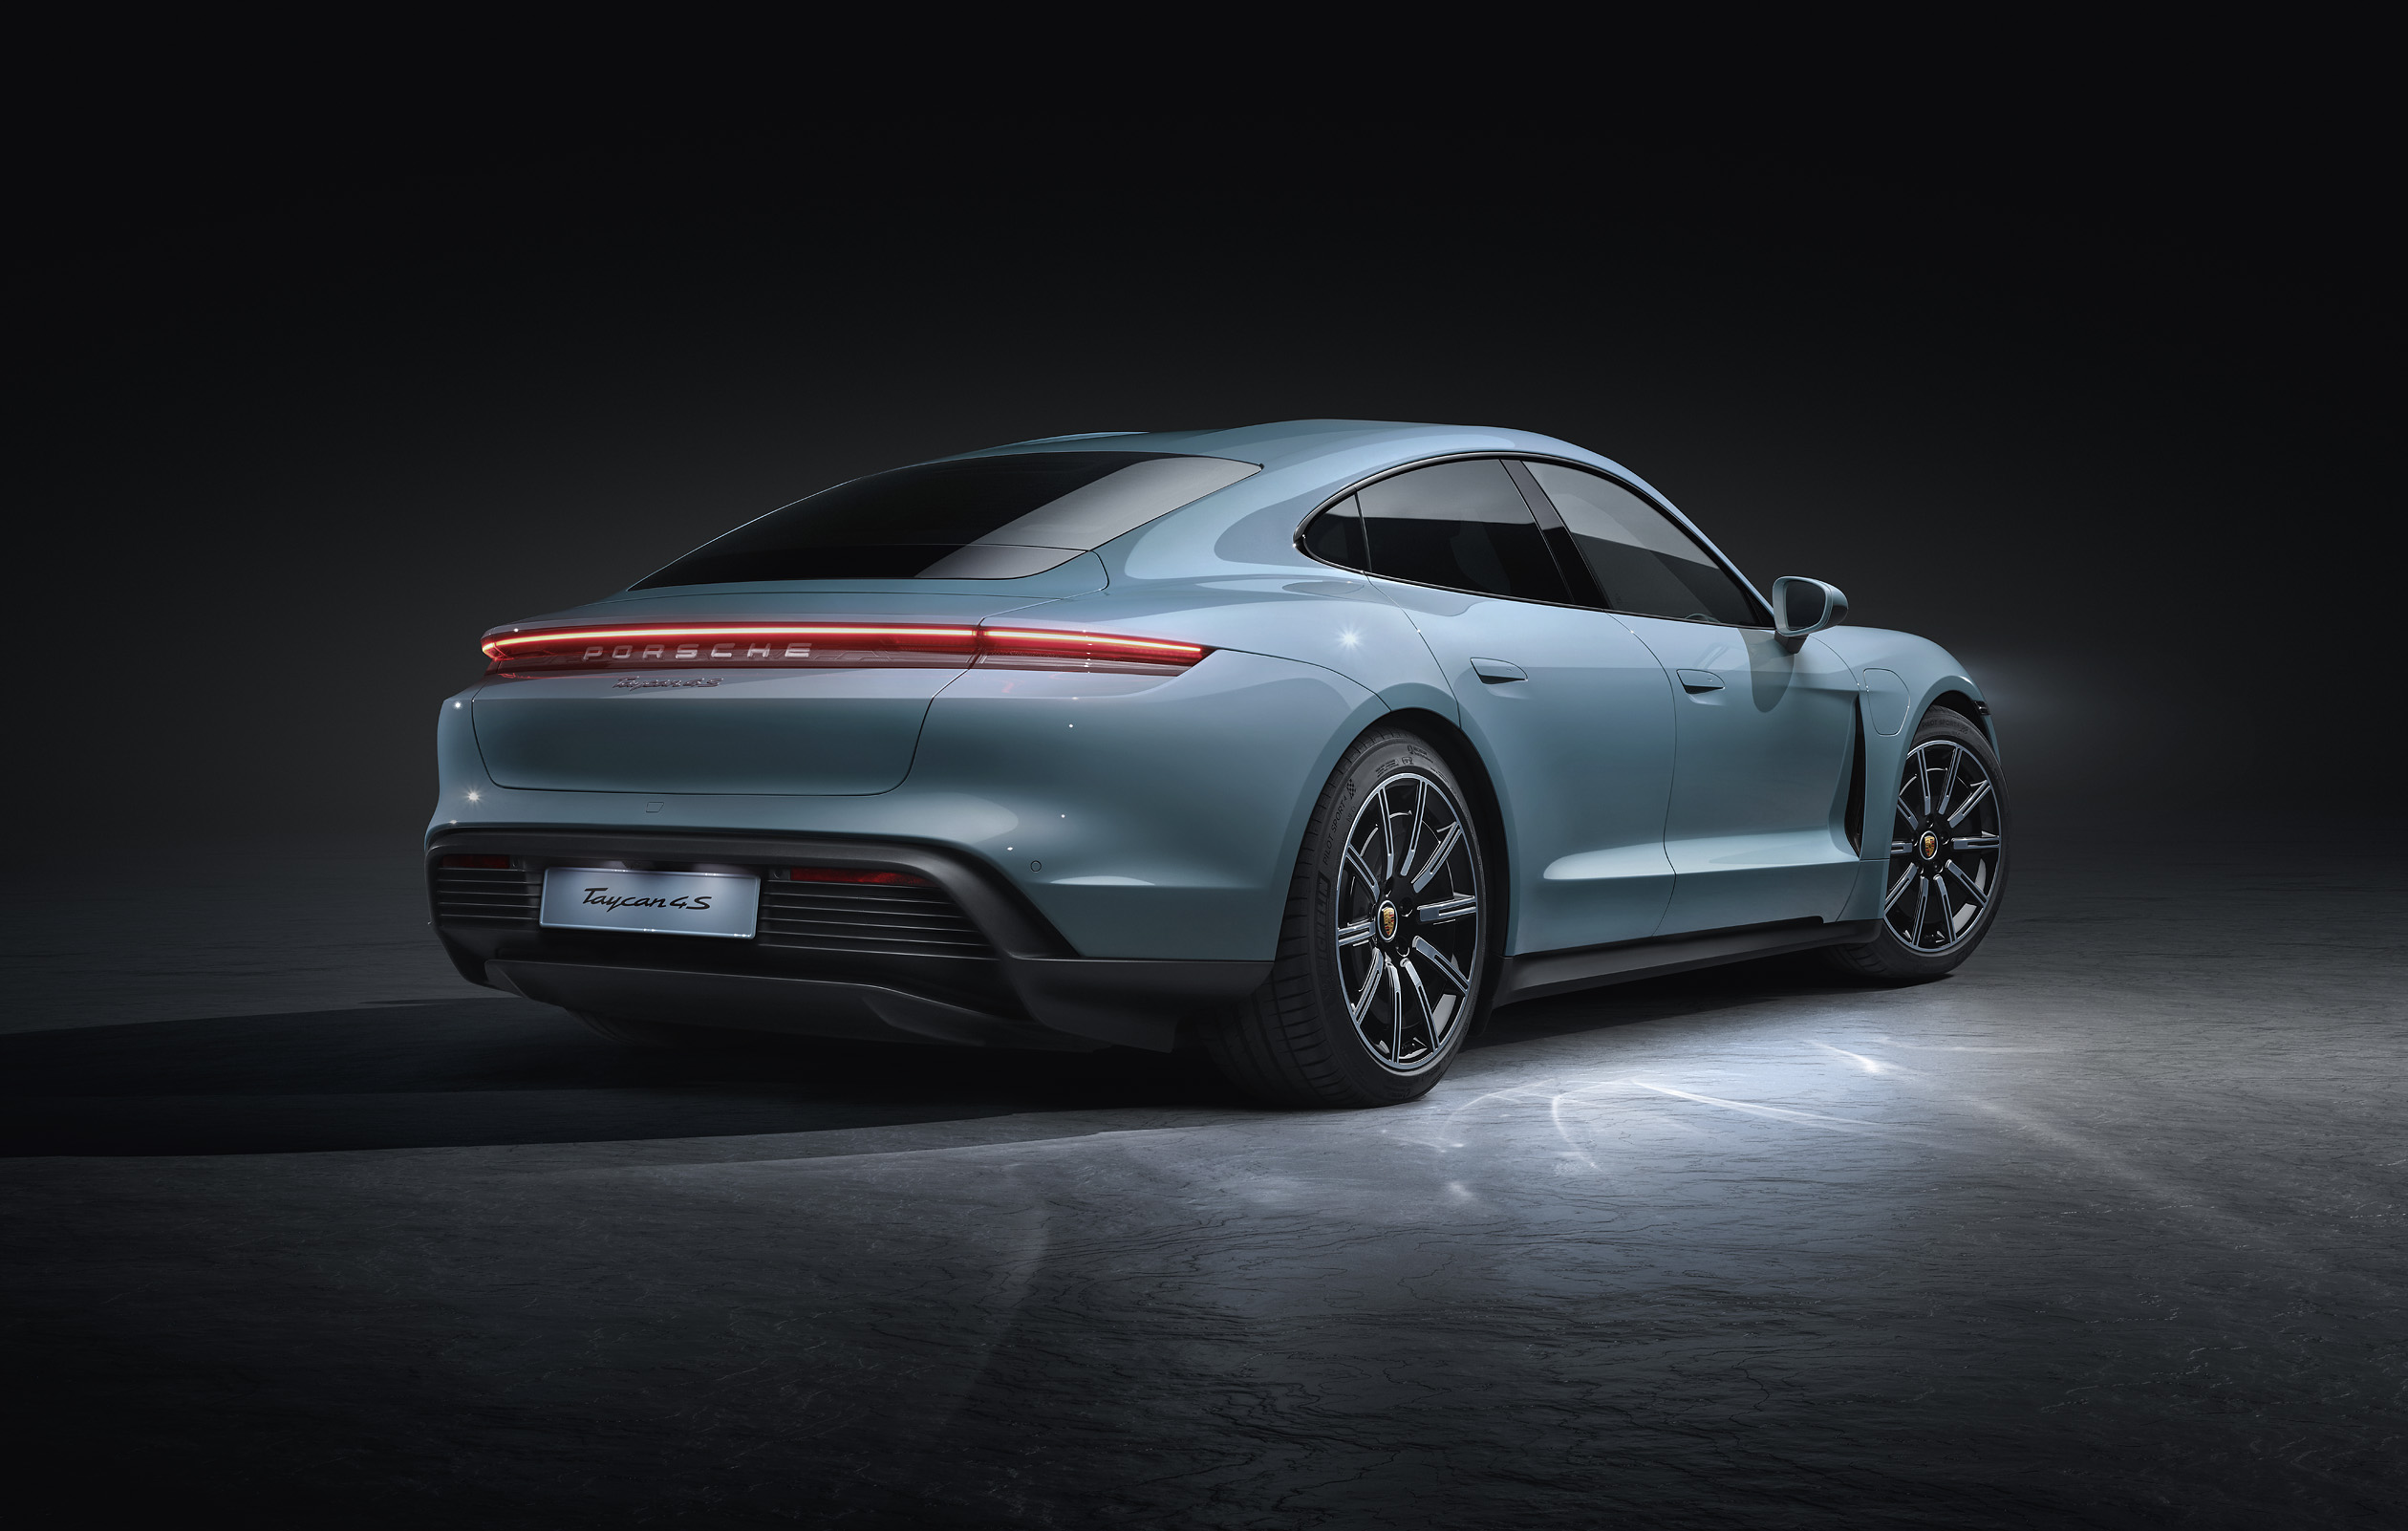 Porsche adds the Taycan 4S to the electric family [5]